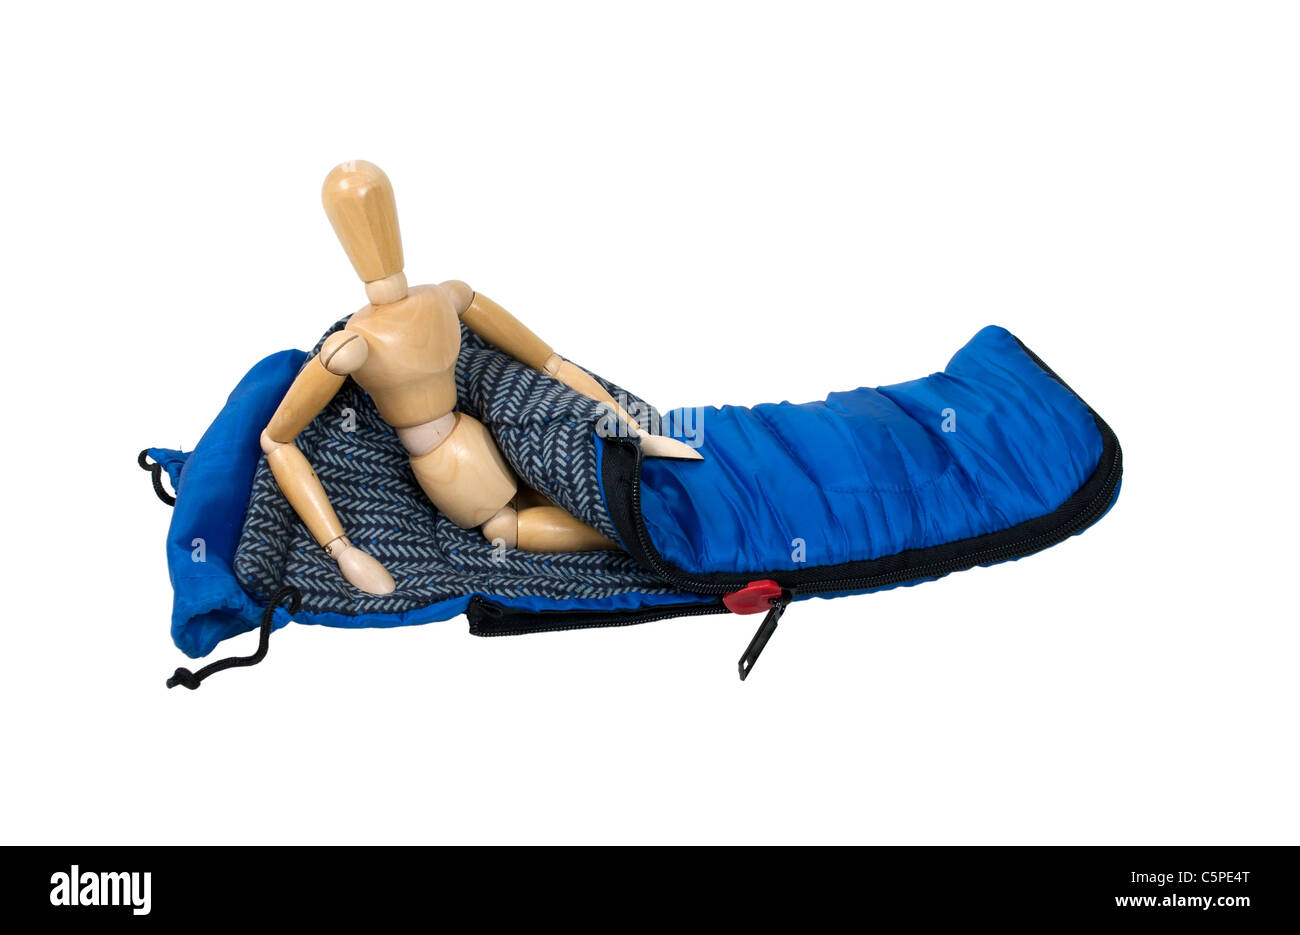 Model sitting up in a sleeping bag used to keep warm on camping trips - path included - Stock Image